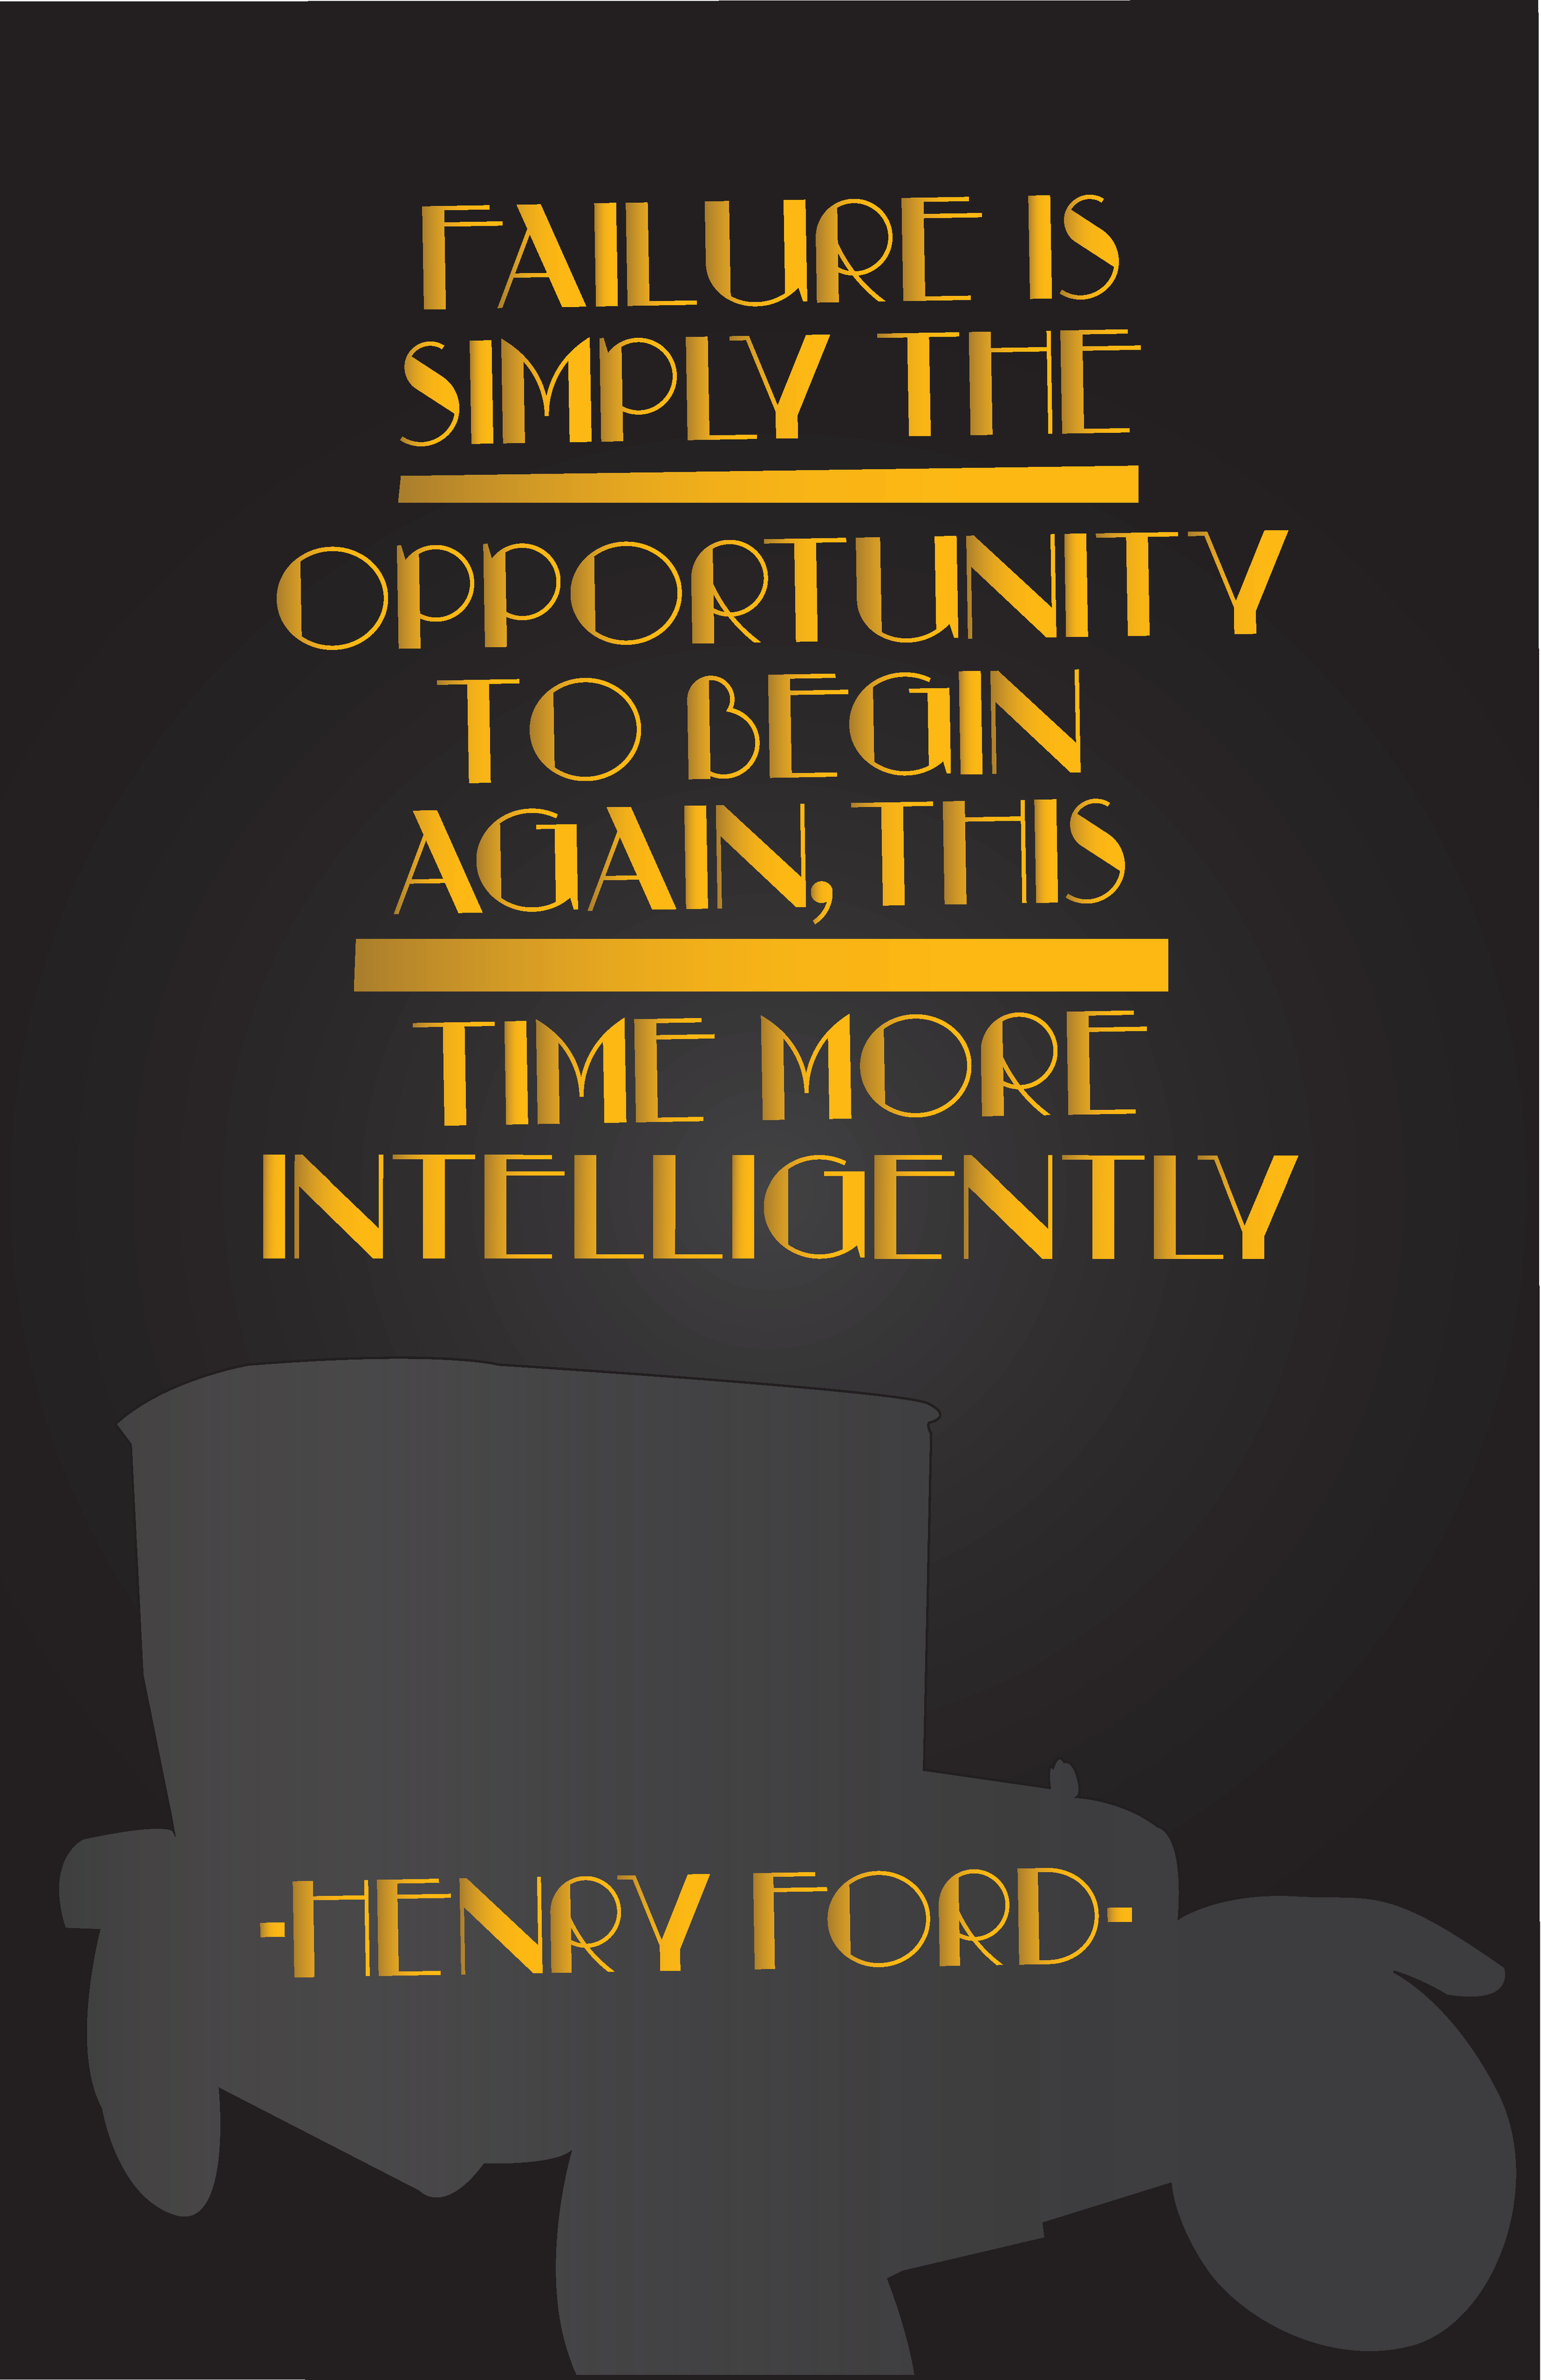 Henry Ford Quote Poster